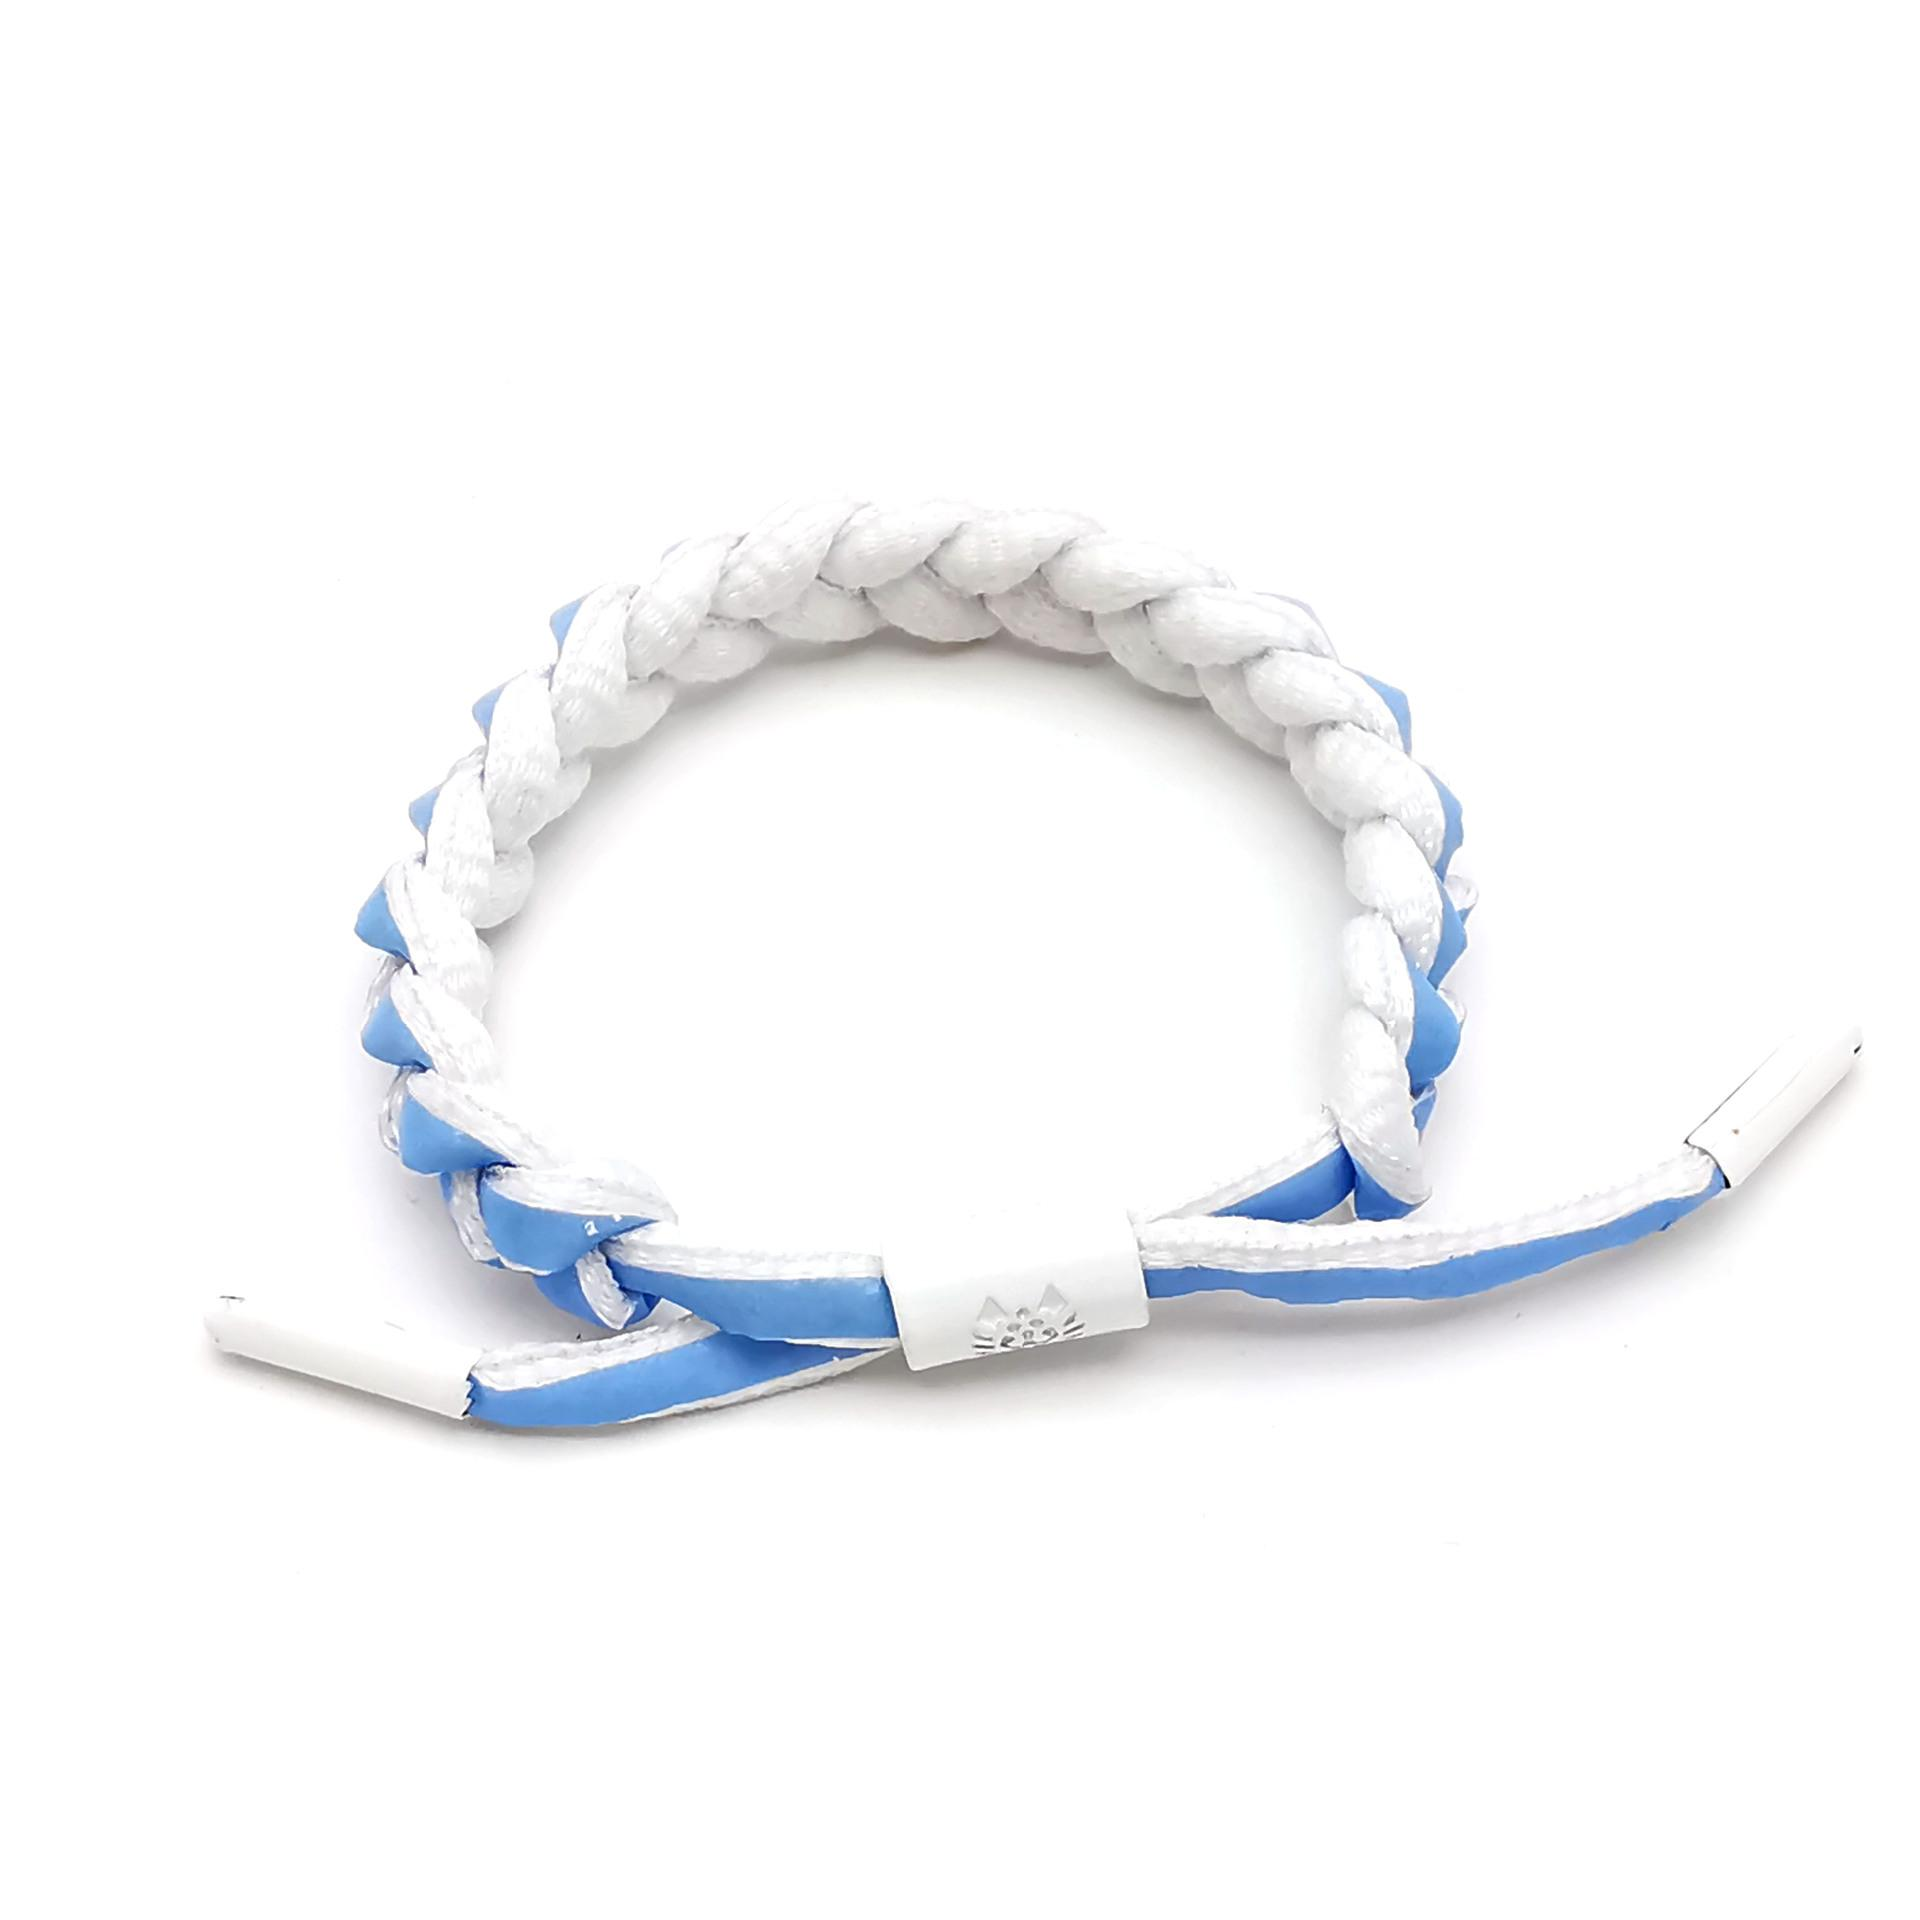 30 piece per lot 2019 hot sell shoelace woven bracelet gradient lovers wristband factory direct sale